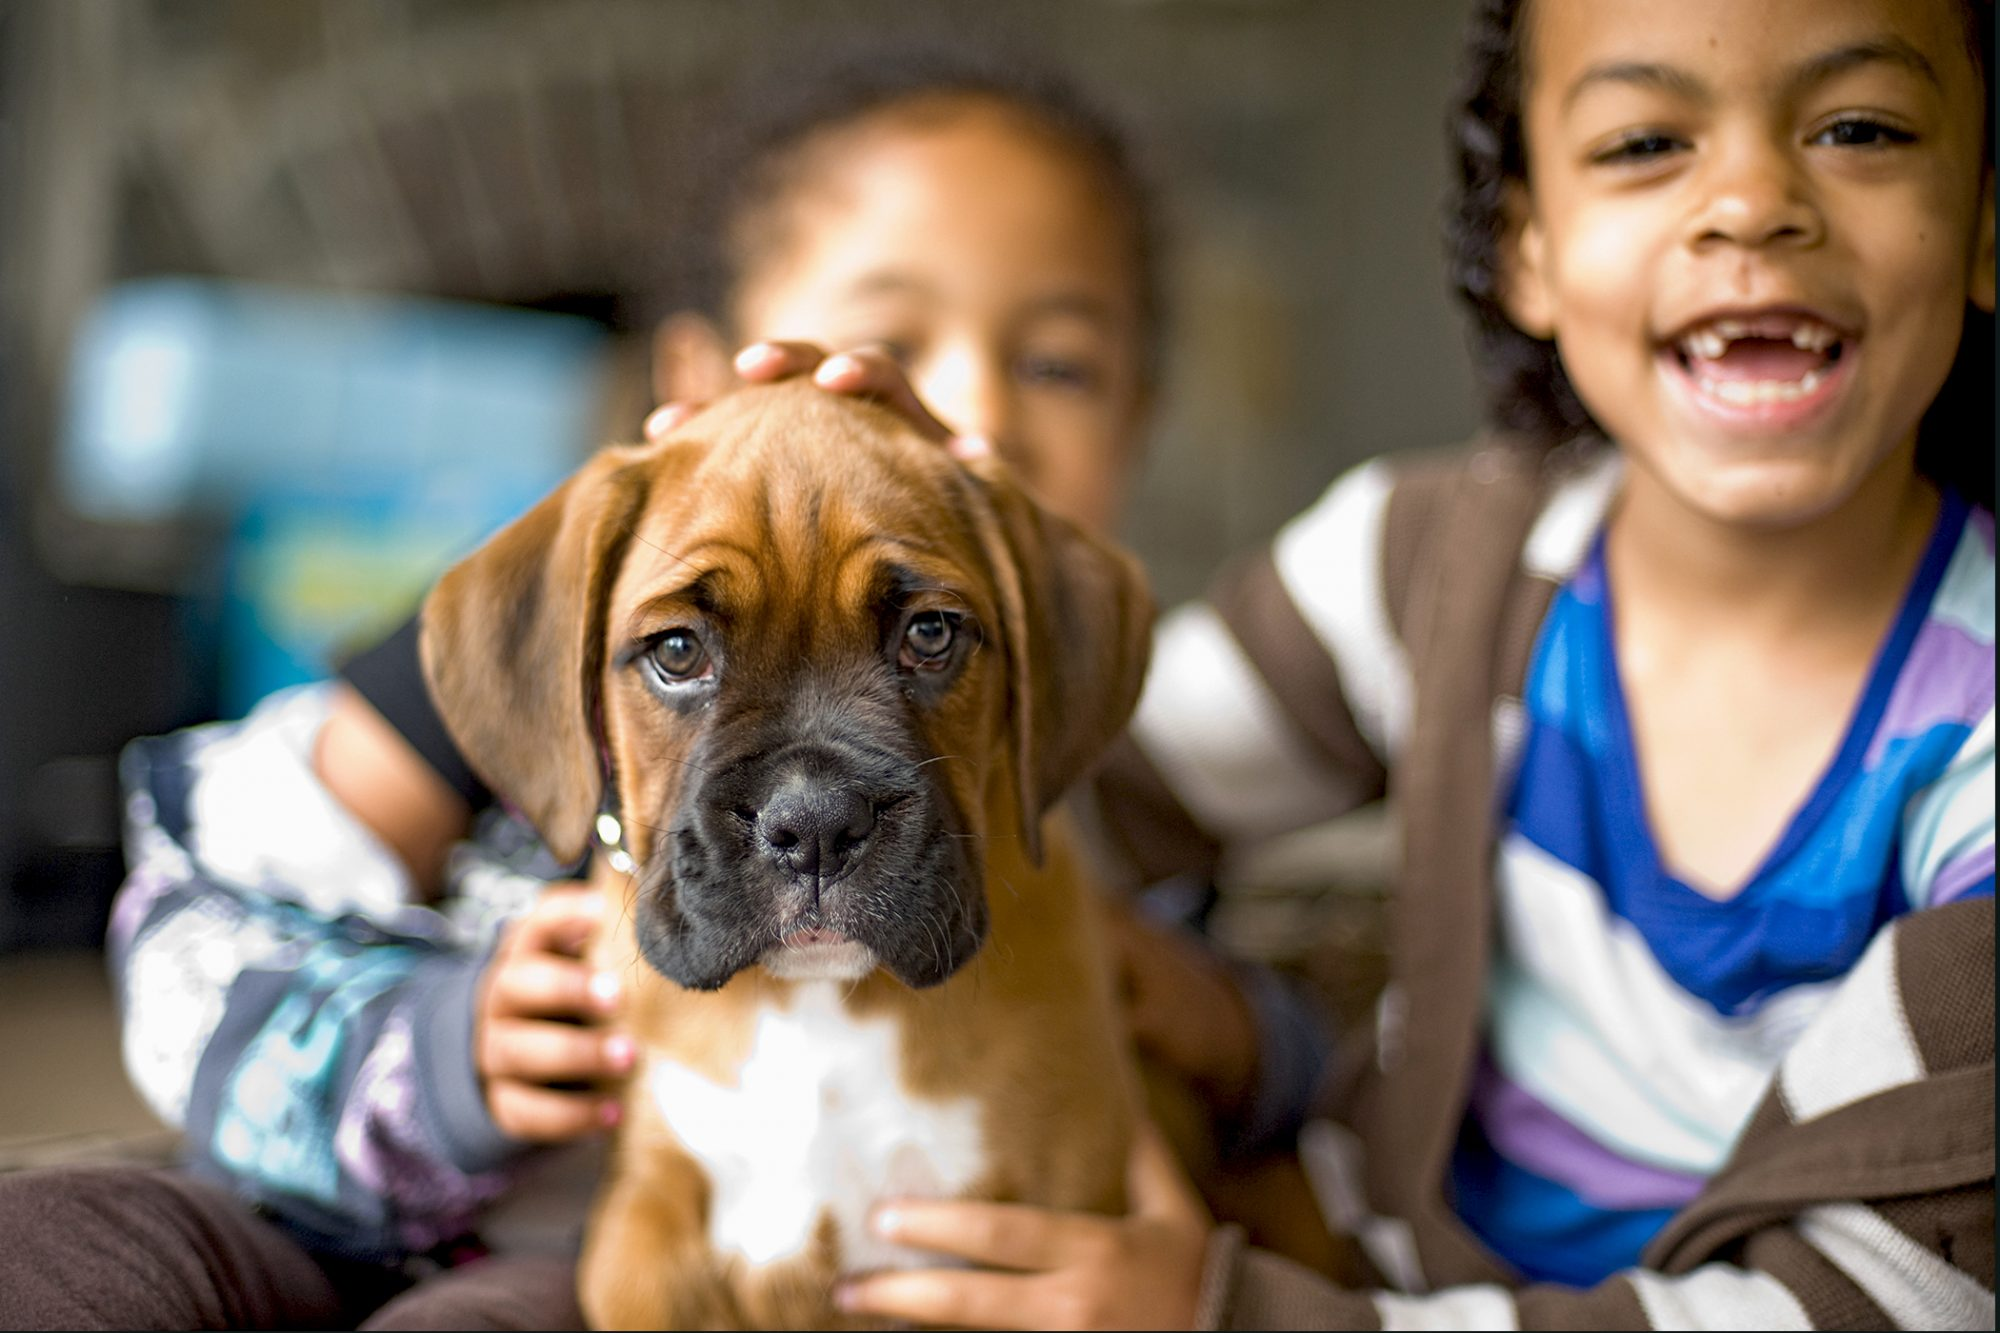 cute boxer puppy being pet by two children inside a house